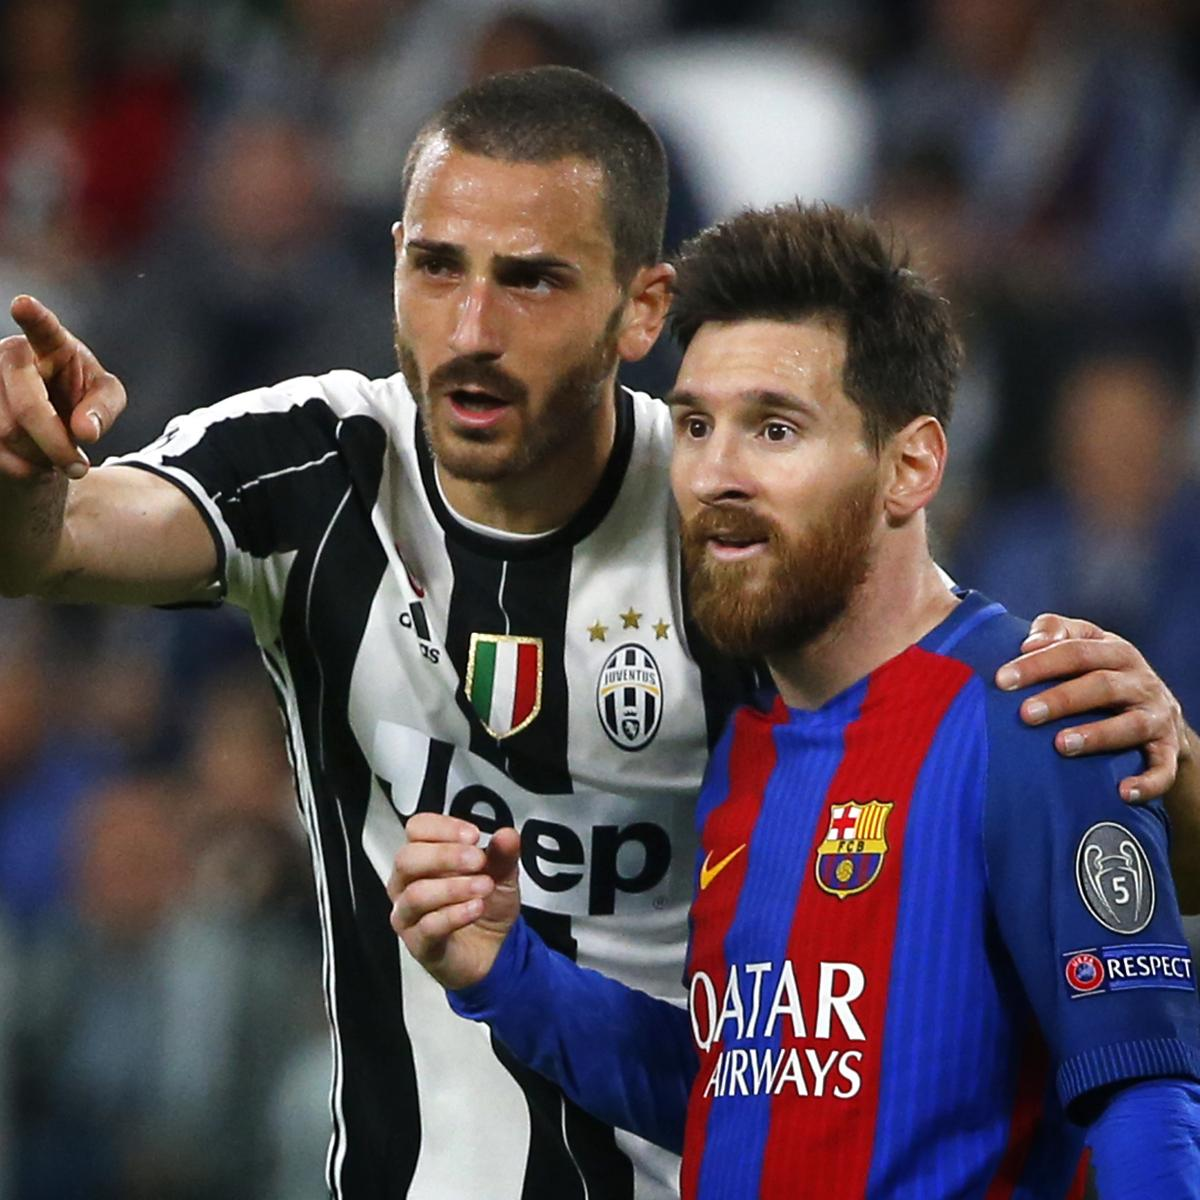 Champions League 2019 Live Stream Odds For Tuesday S: Champions League 2017: Quarter-Finals Leg 2 Live-Stream